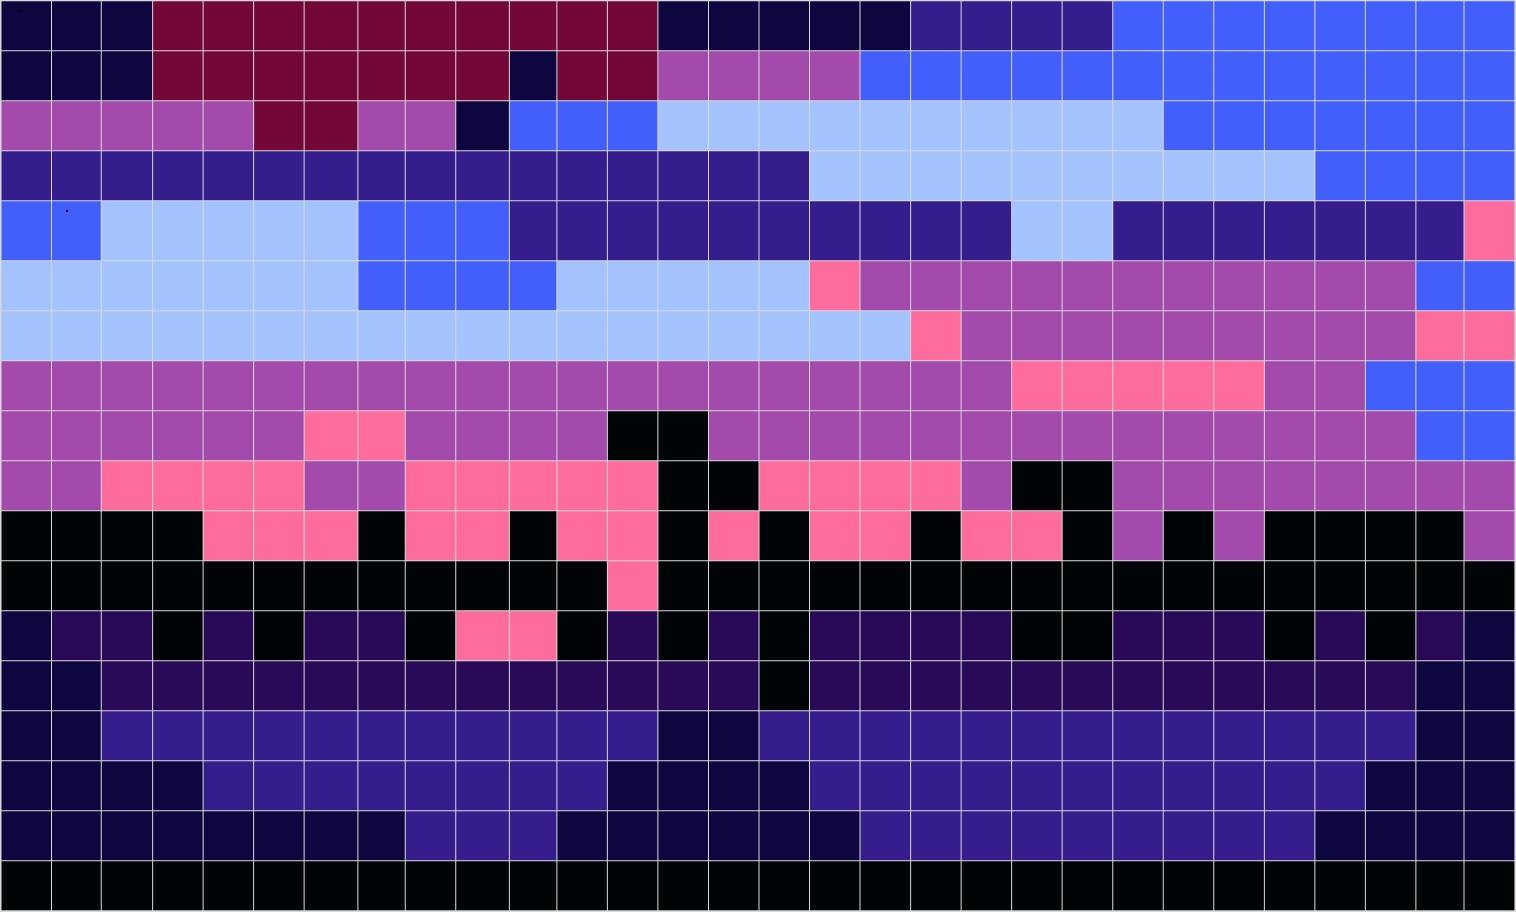 Images from Photos to 16 bit Square/ Hexagonal Grid Images